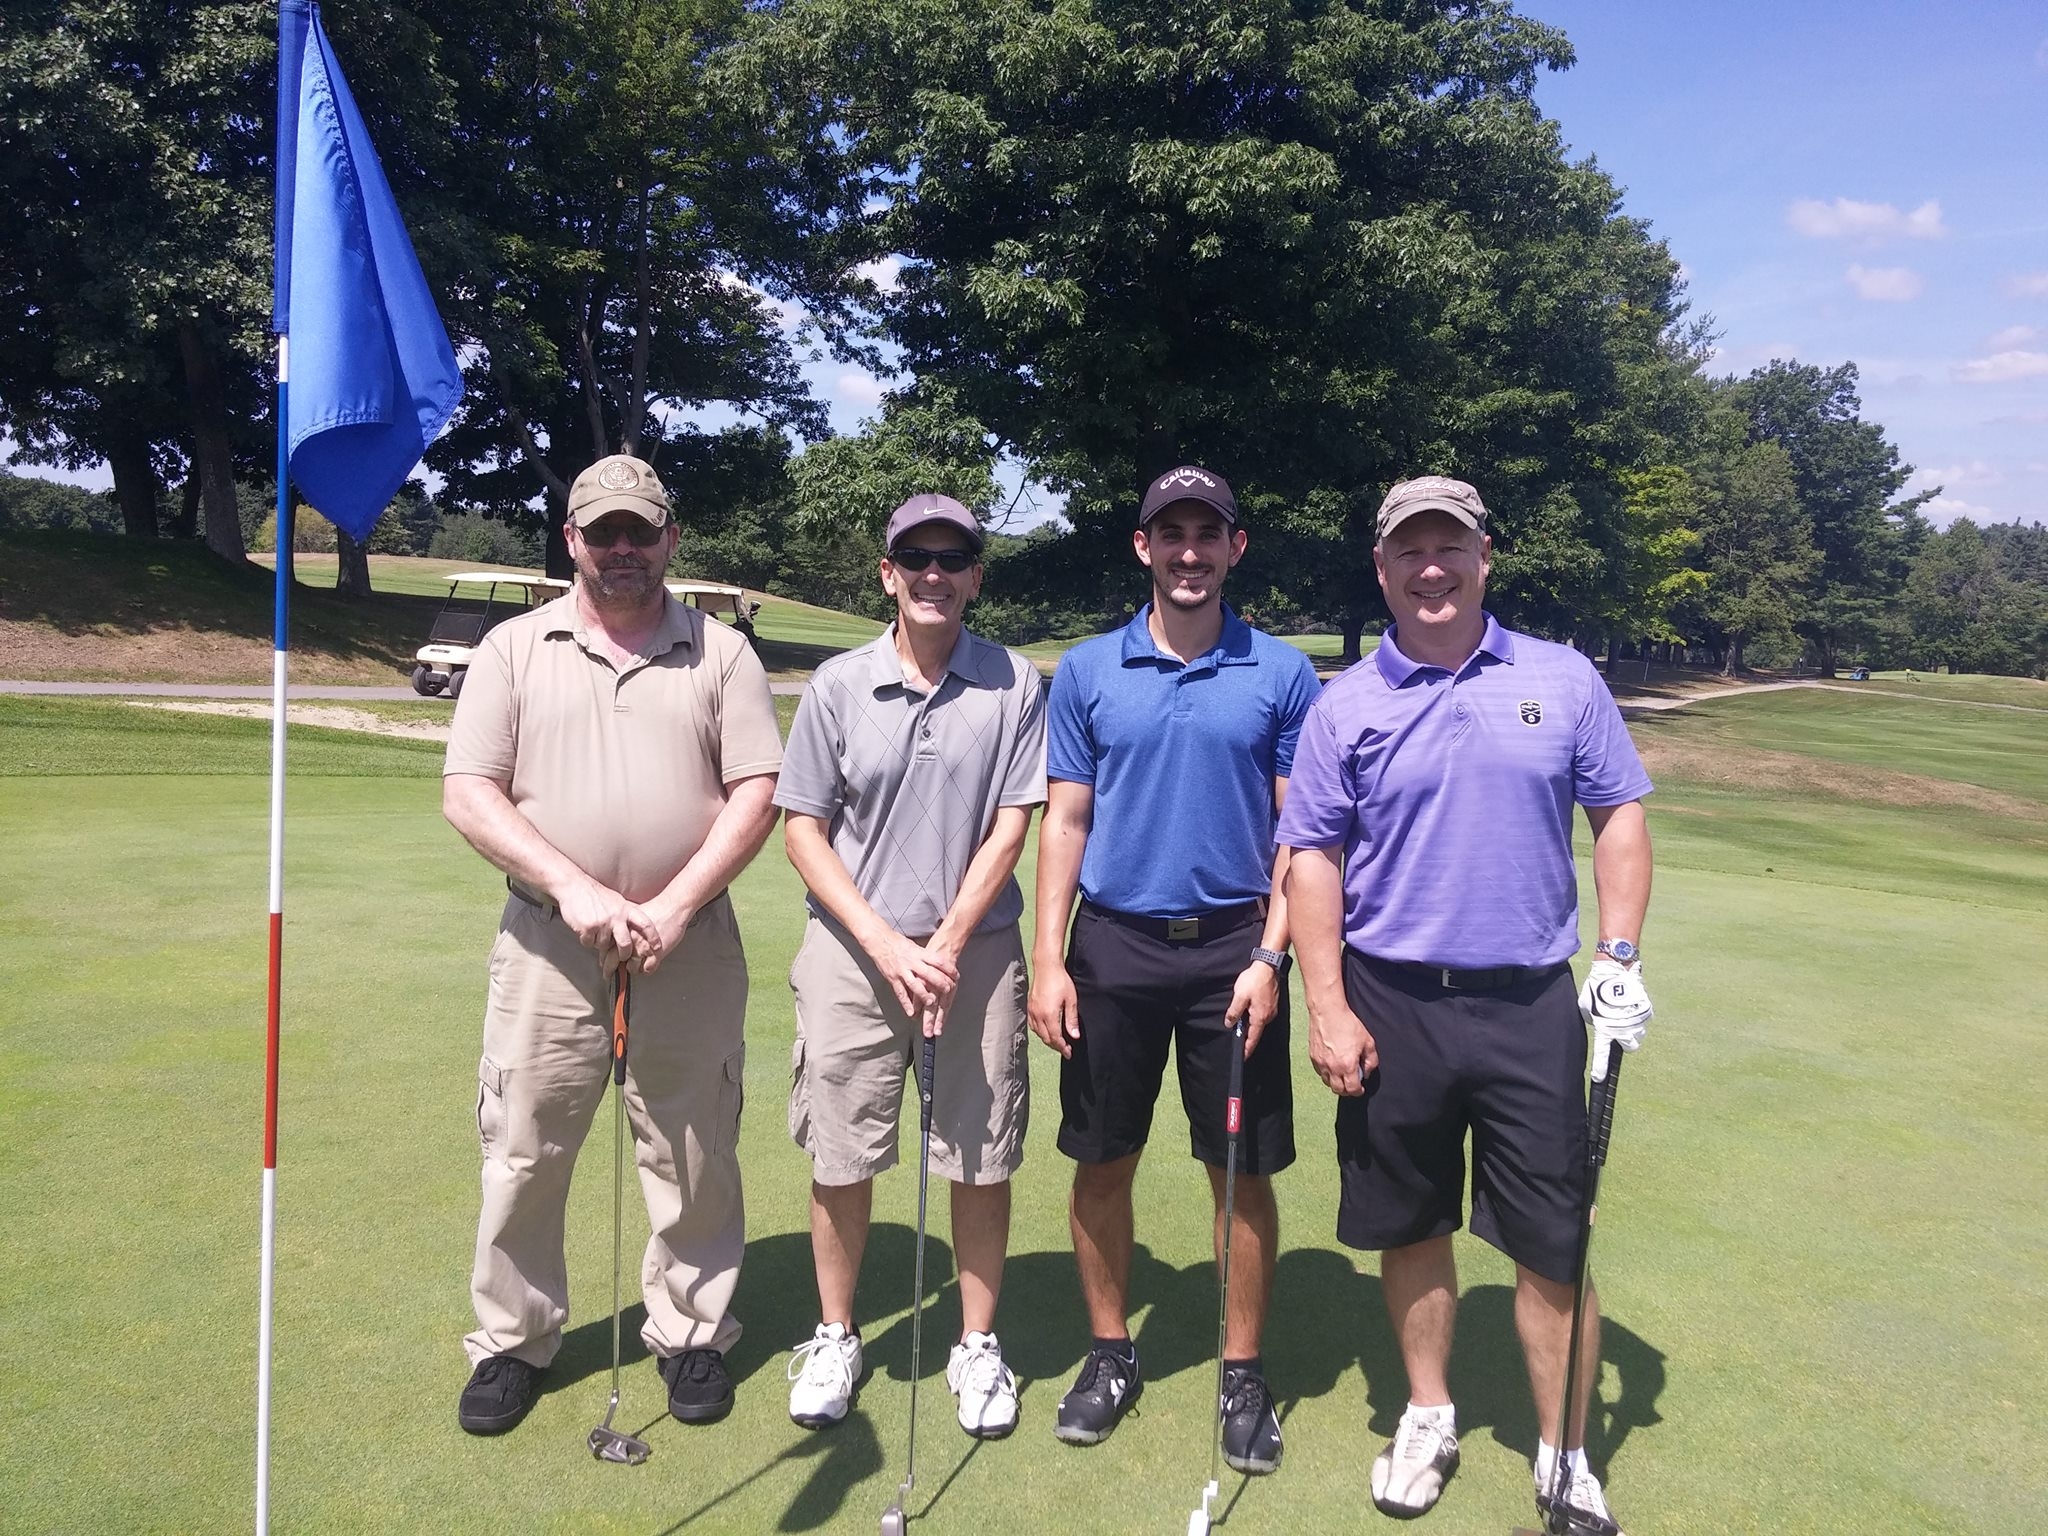 Scramble for Charity 2016